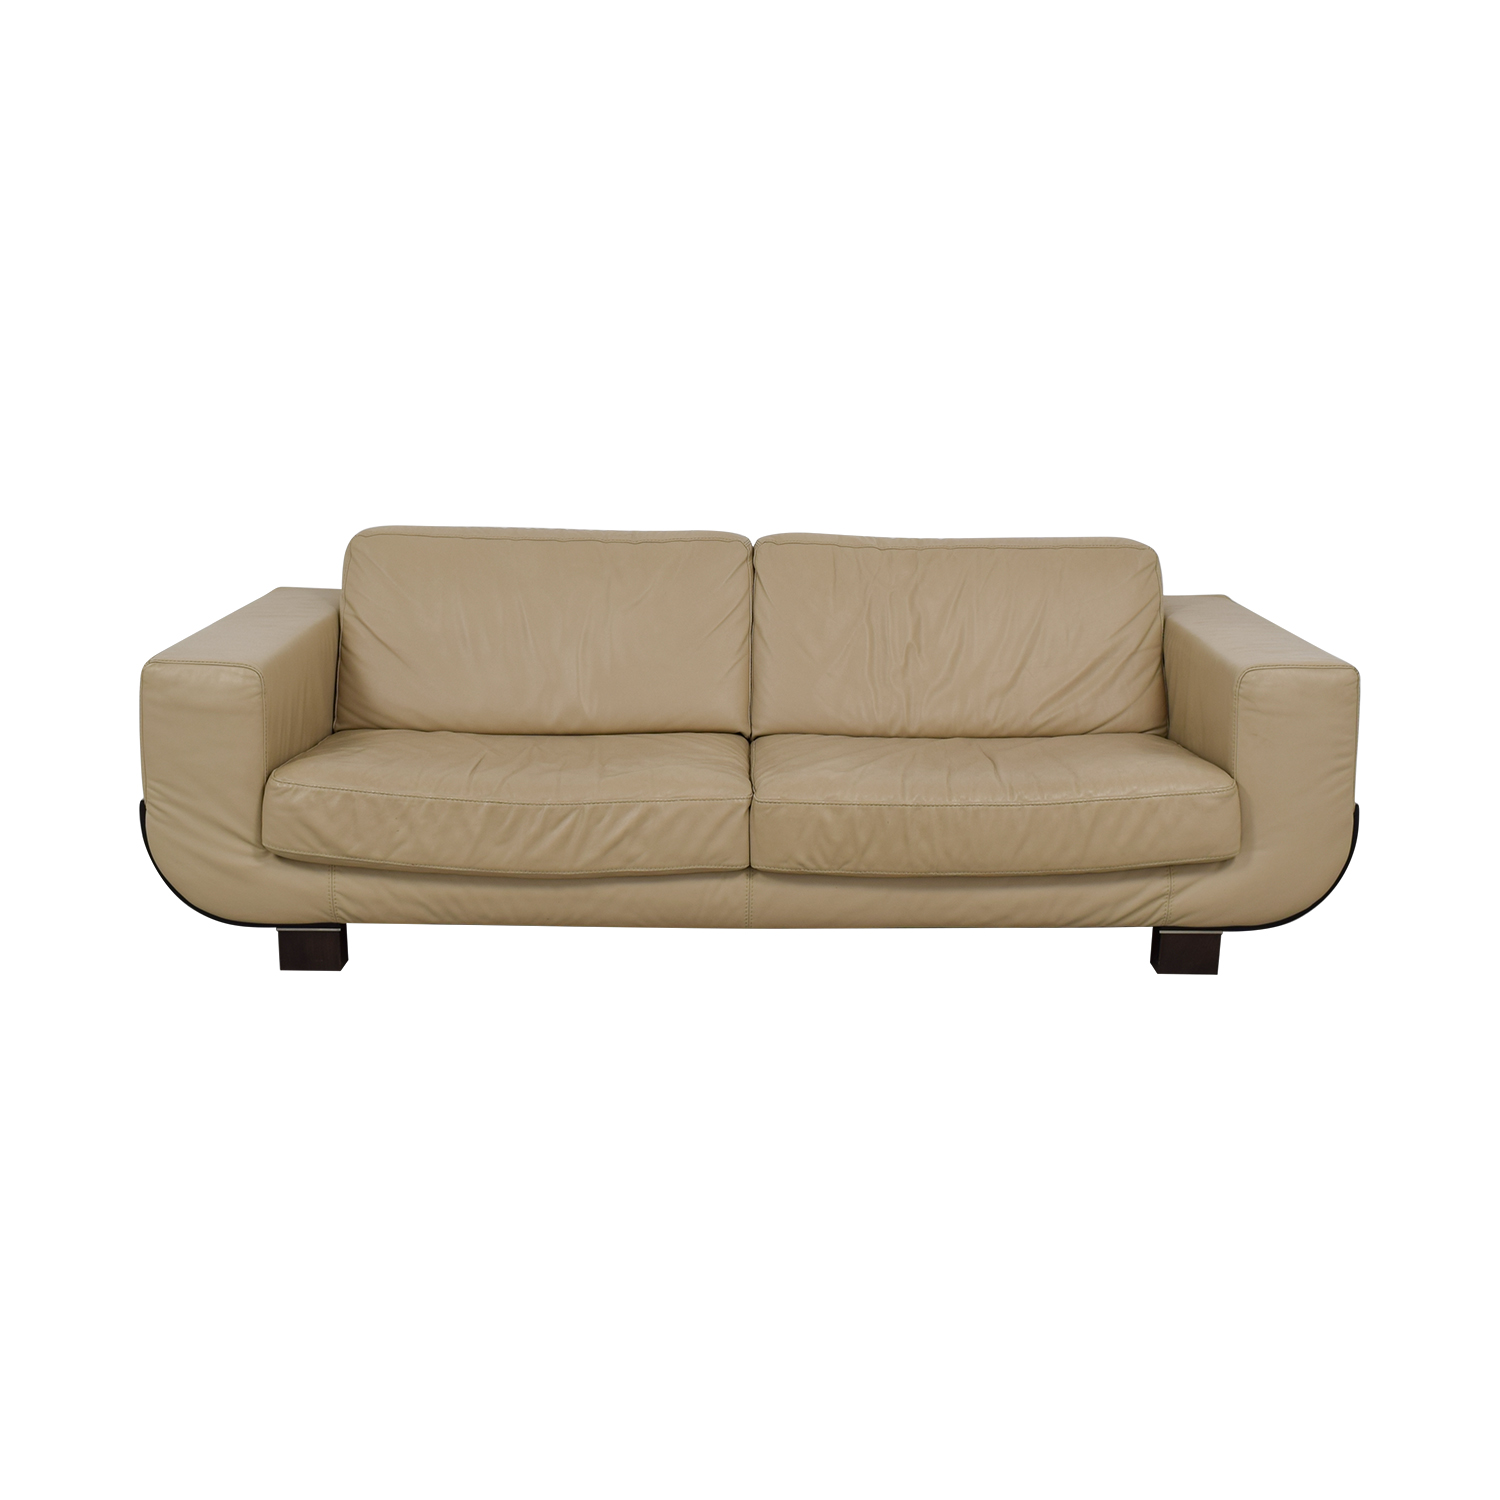 Natuzzi Natuzzi Beige Leather Two-Cushion Sofa dimensions